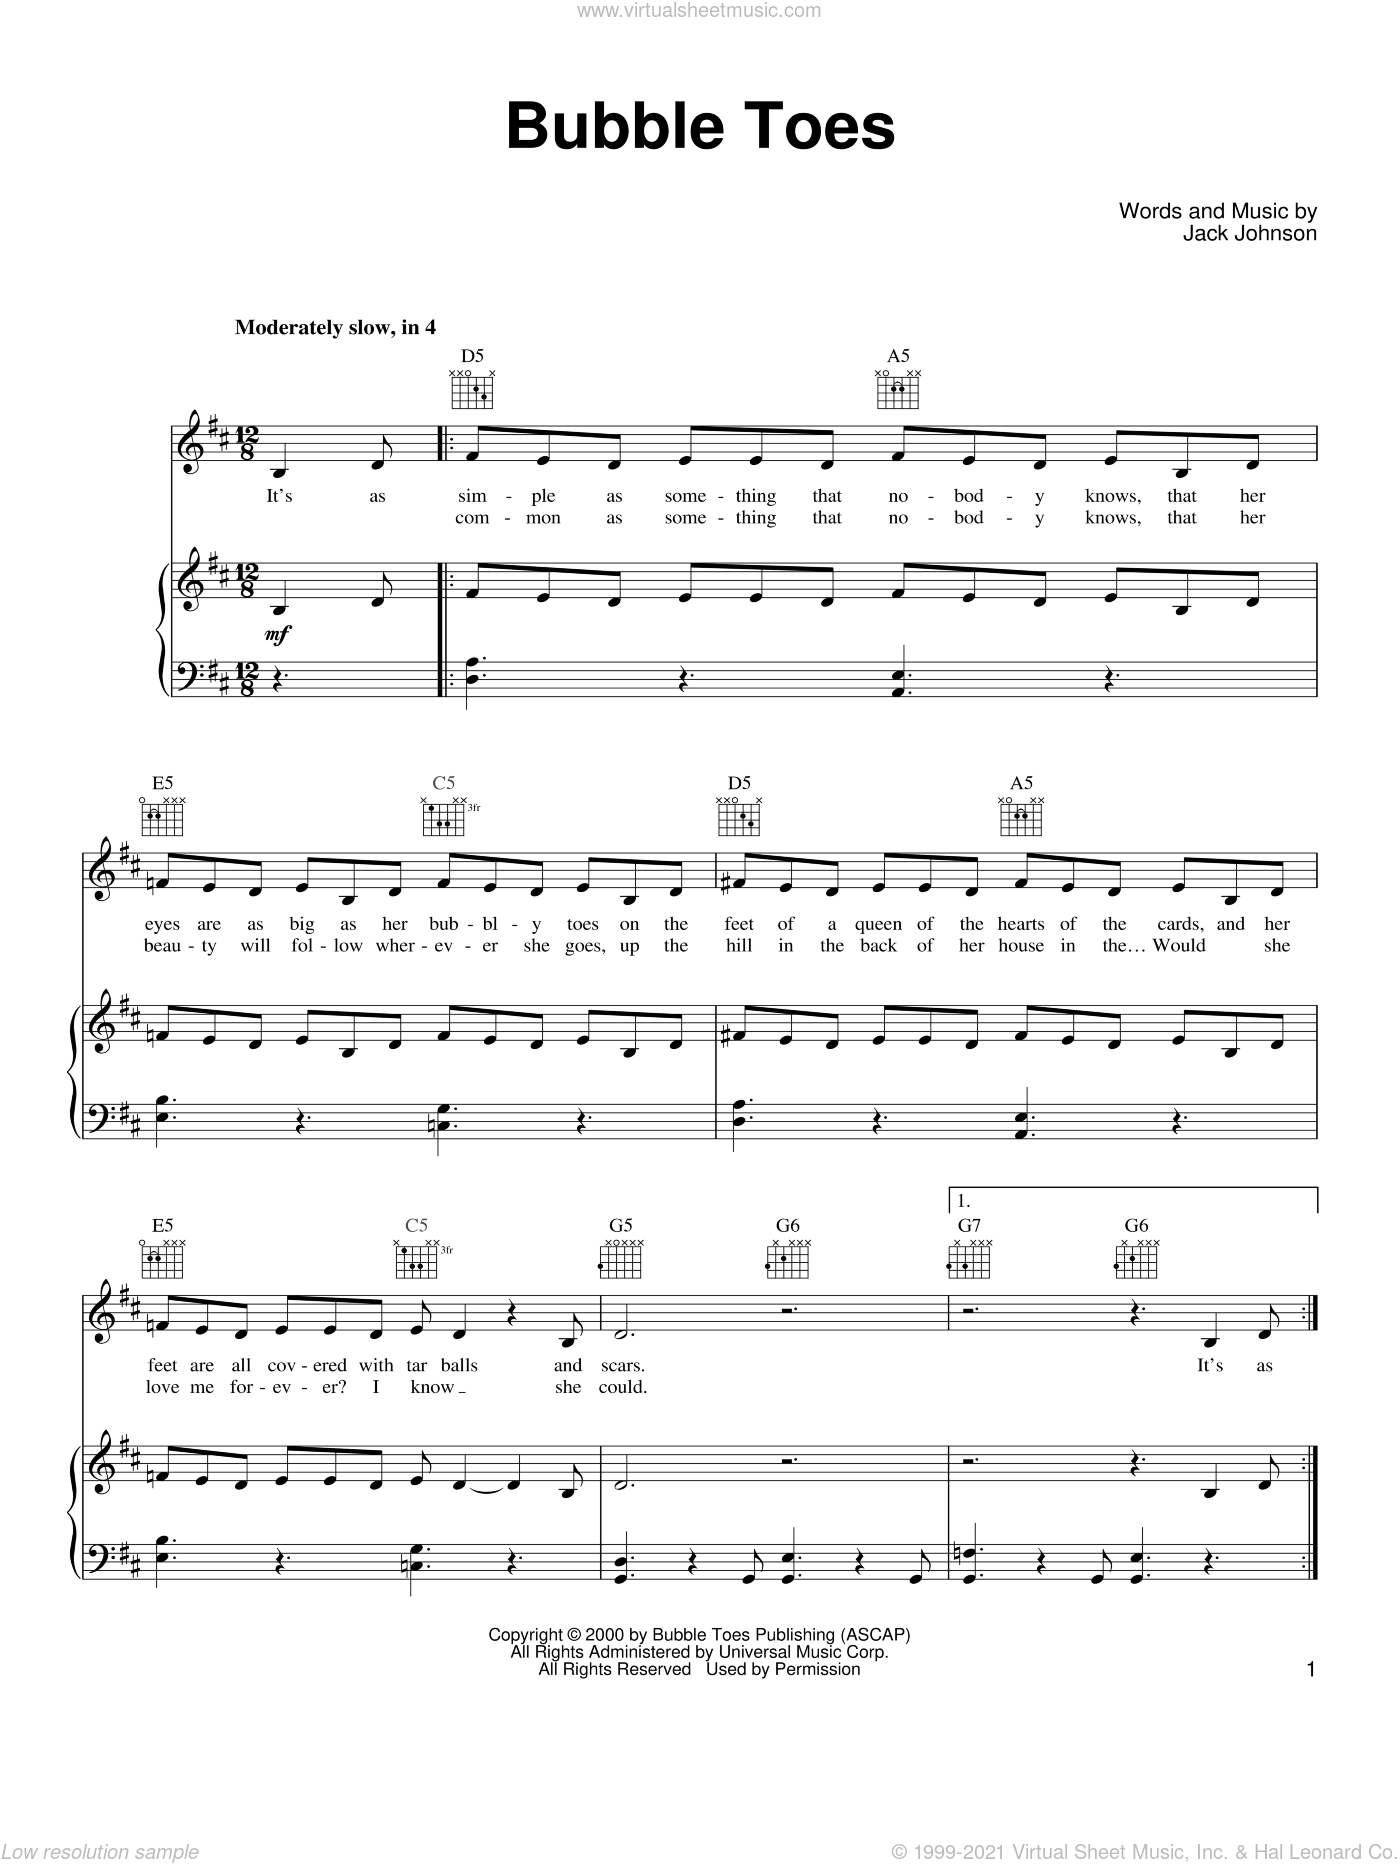 Bubble Toes sheet music for voice, piano or guitar by Jack Johnson, intermediate voice, piano or guitar. Score Image Preview.